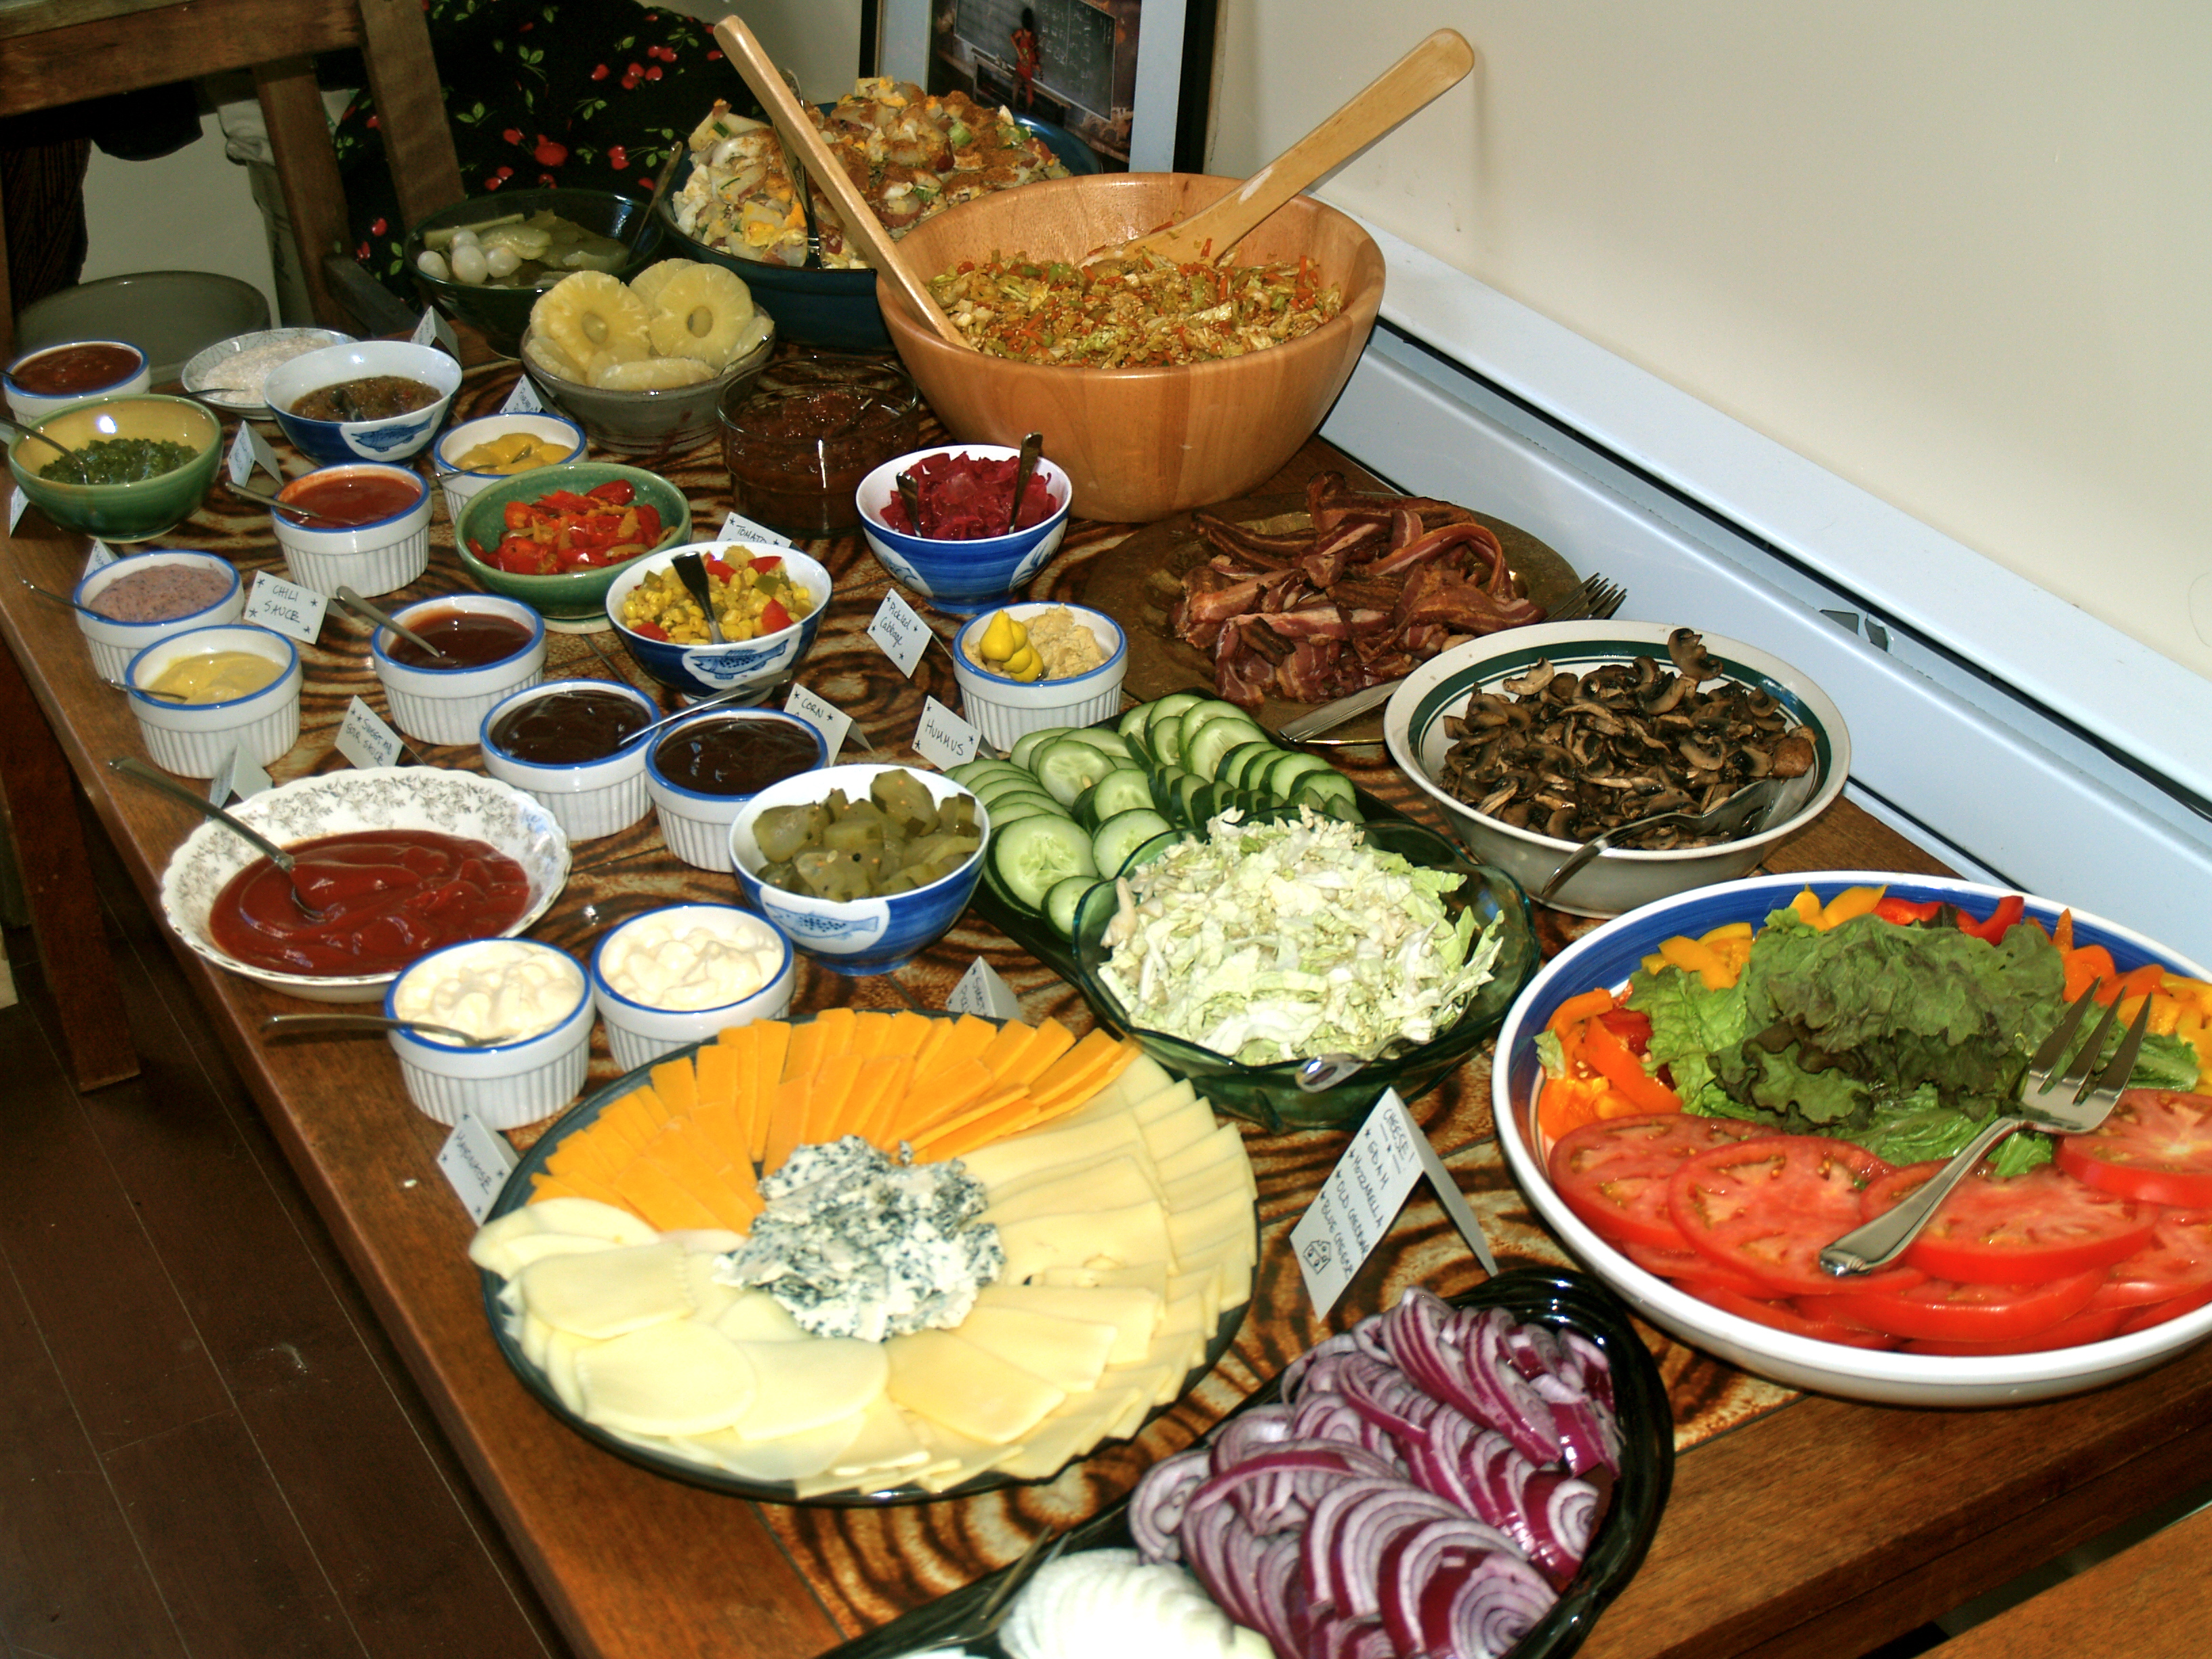 Dinner parties red cedar for Food bar ideas for a party